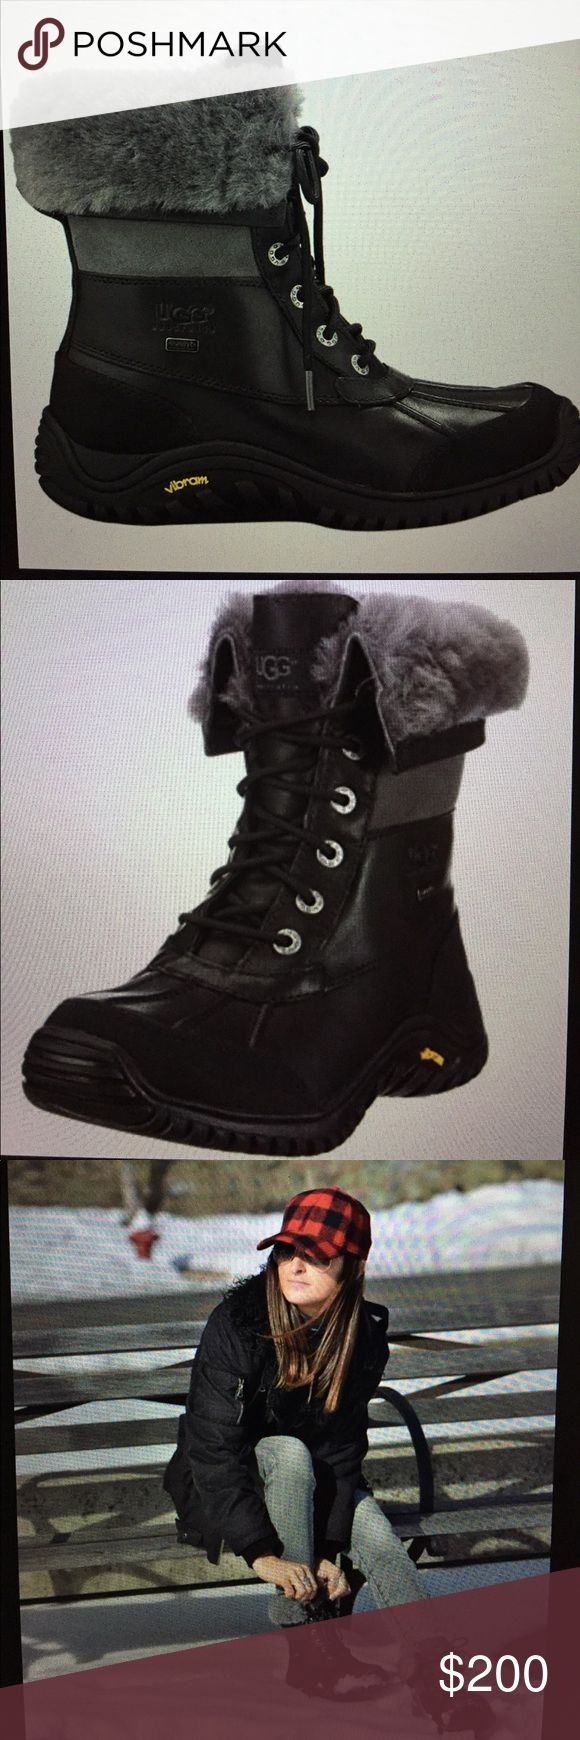 UGG Australia women's winter boots Brand new. Never been worn. Still in box. Waterproof & cold weather proof( -20 degrees celsius/-4 degrees Fahrenheit). UGG Shoes Winter & Rain Boots